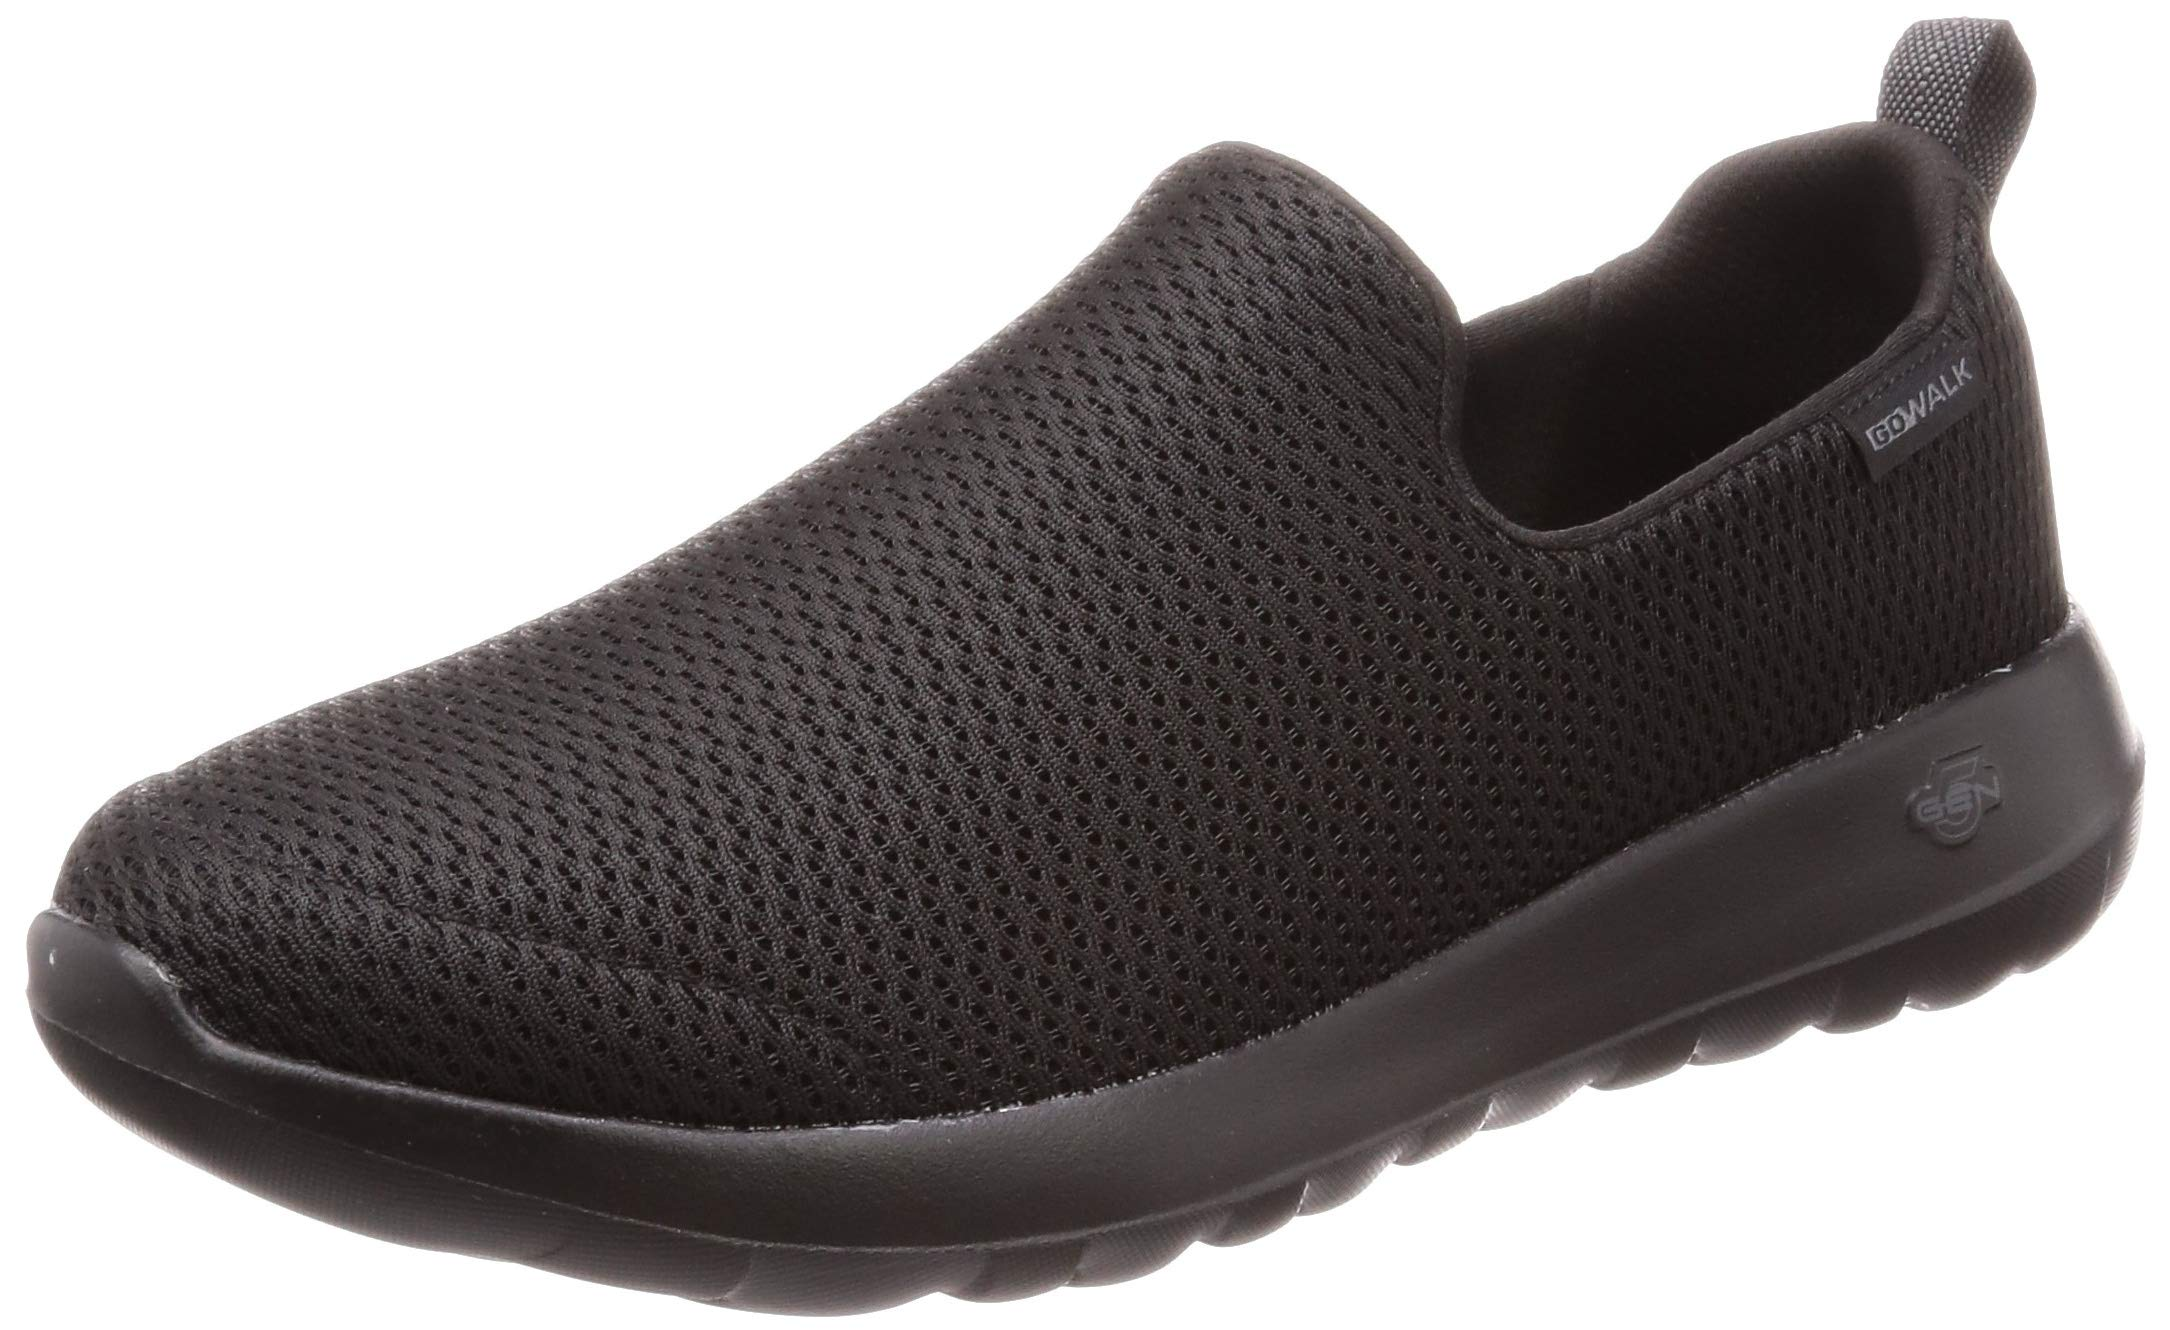 Skechers Performance Men's Go Walk Max Sneaker,black,10.5 M US